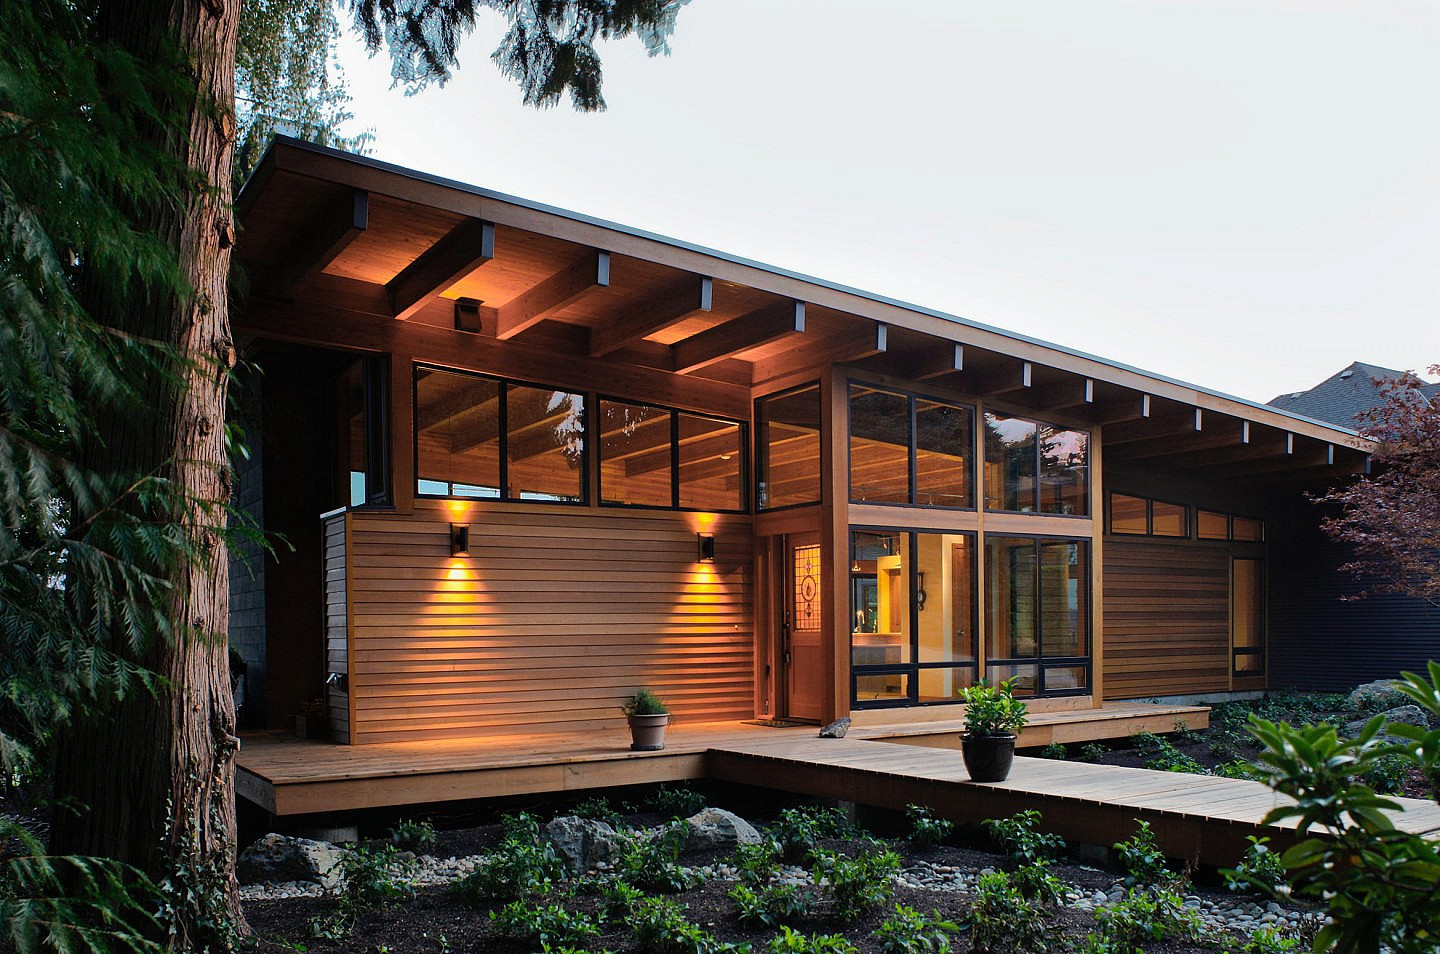 terrific-eco-friendly-house-design-ideas-showcasing-traditional-small-sustainable-homes-with-bamboo-wall-decor-and-glass-sliding-door-panel-also-green-garden-front-yard-inspiration-small-sustainable-h